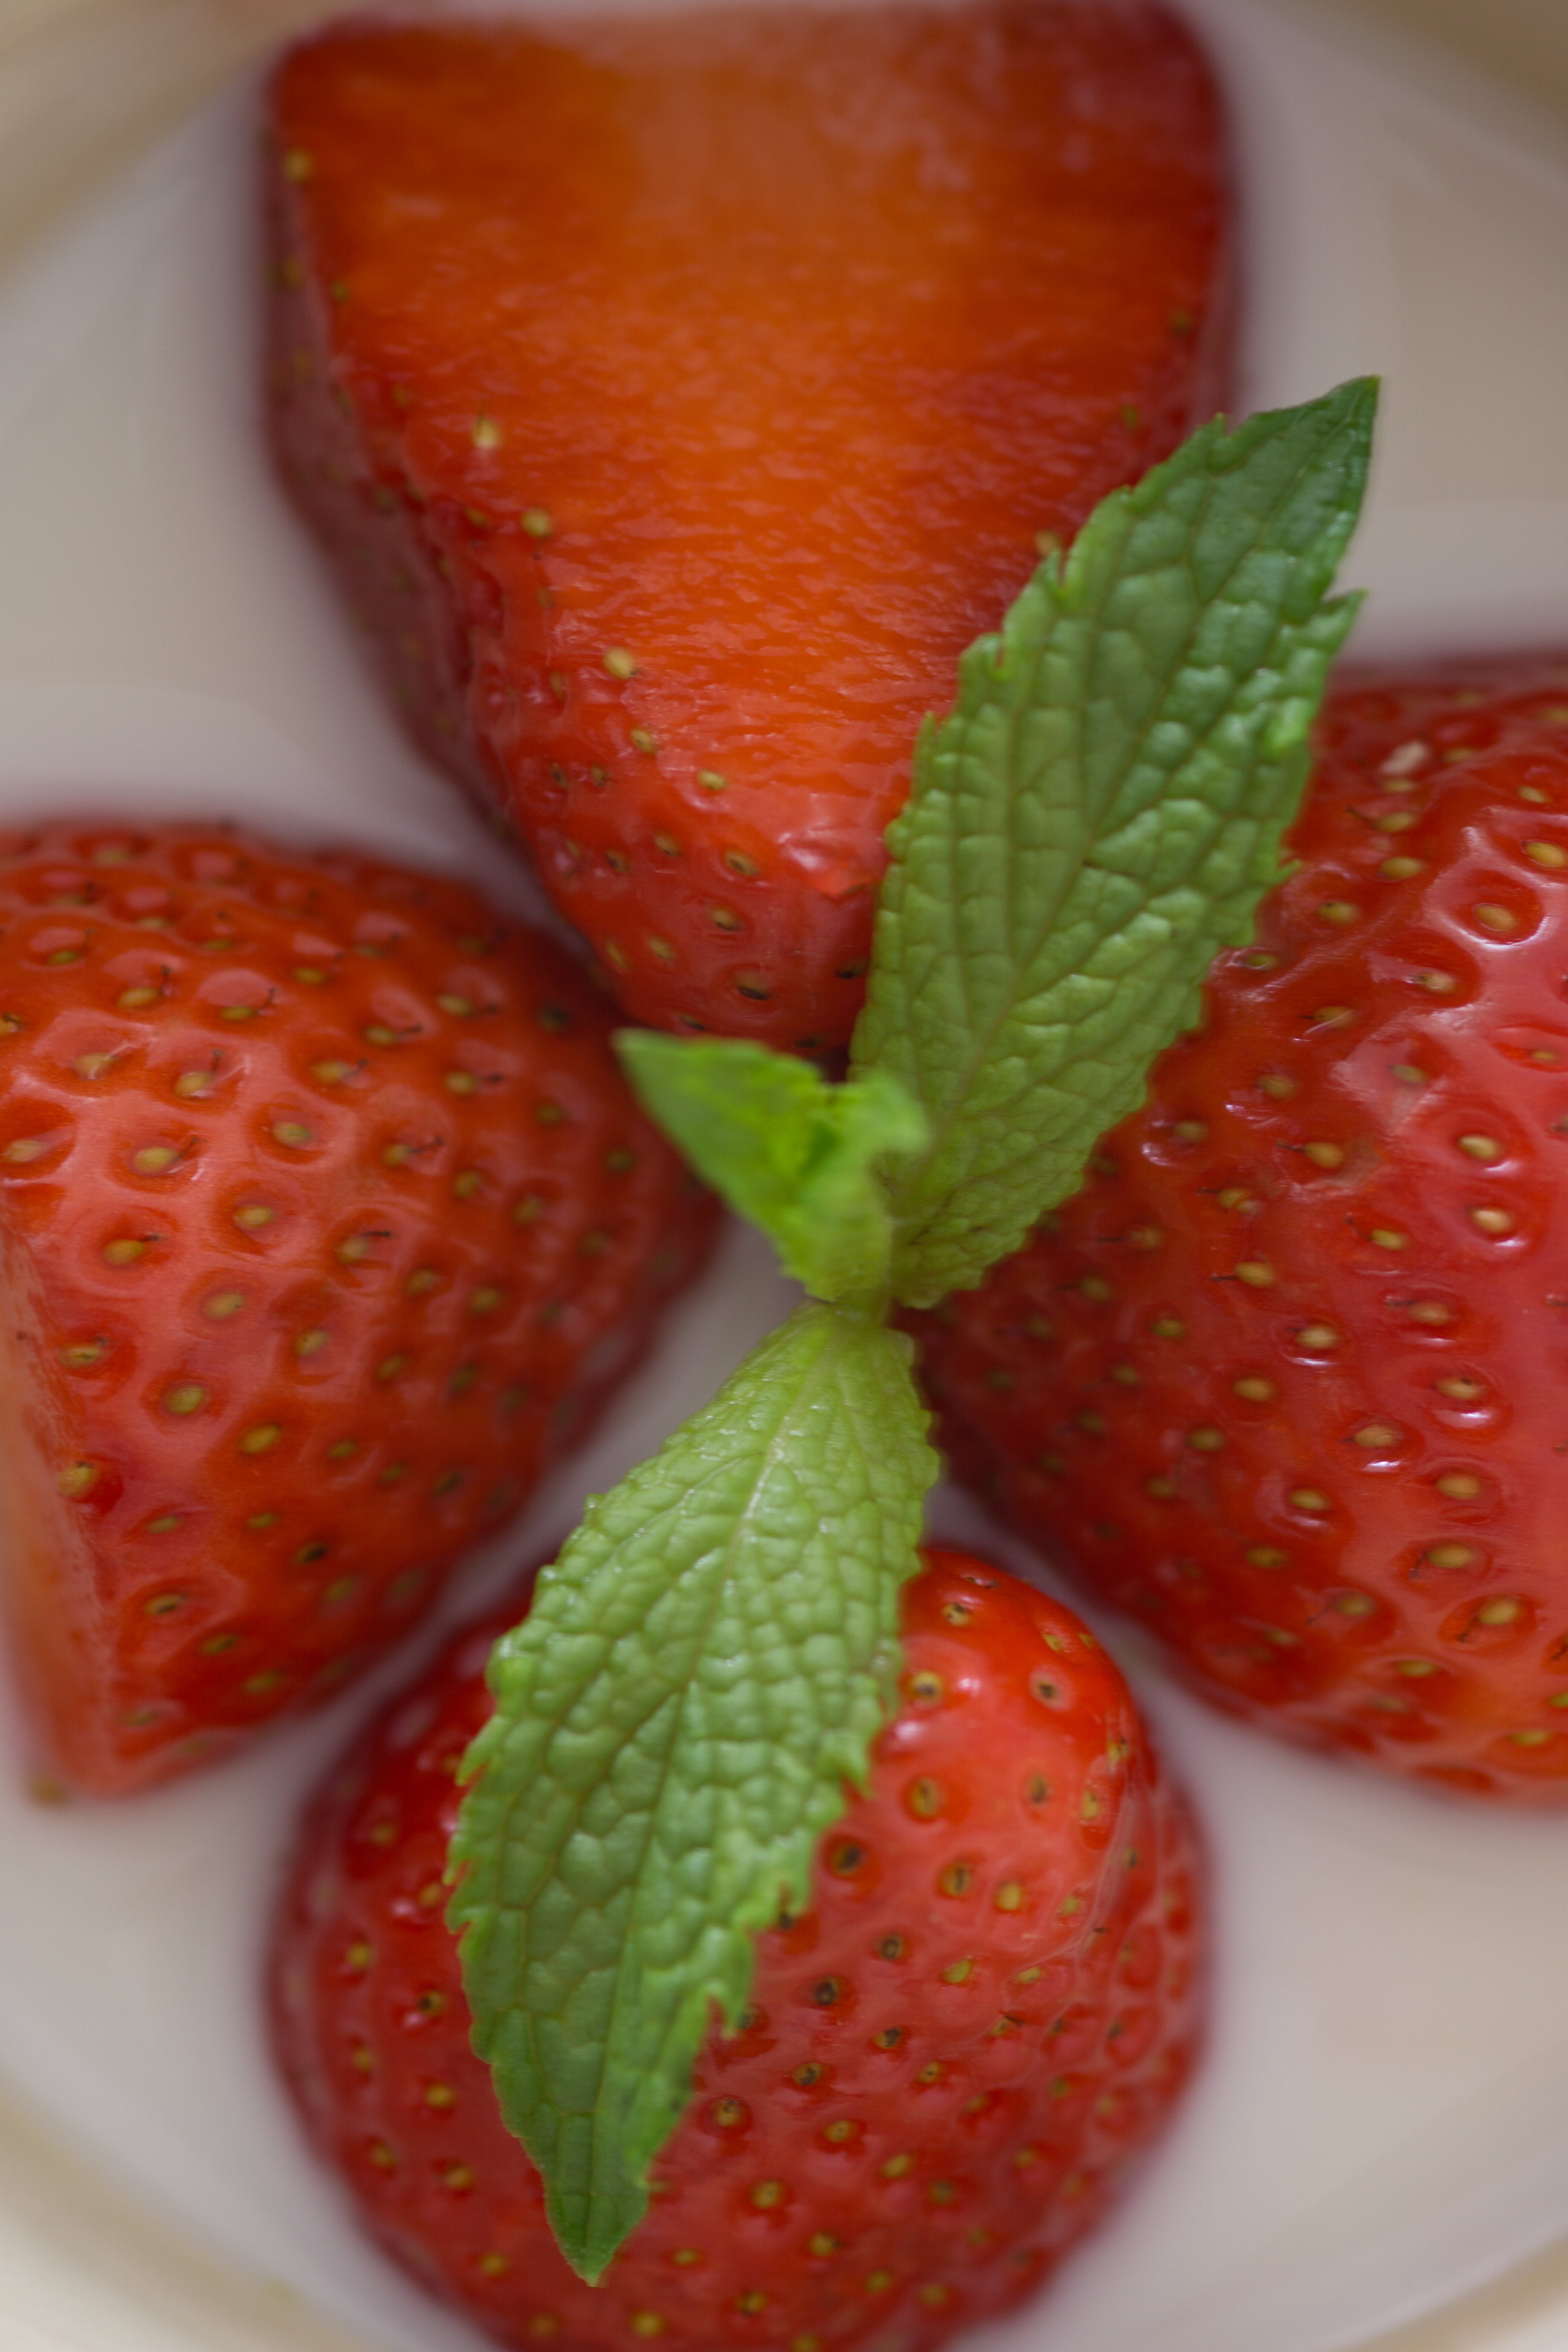 Four Strawberries on White Plate